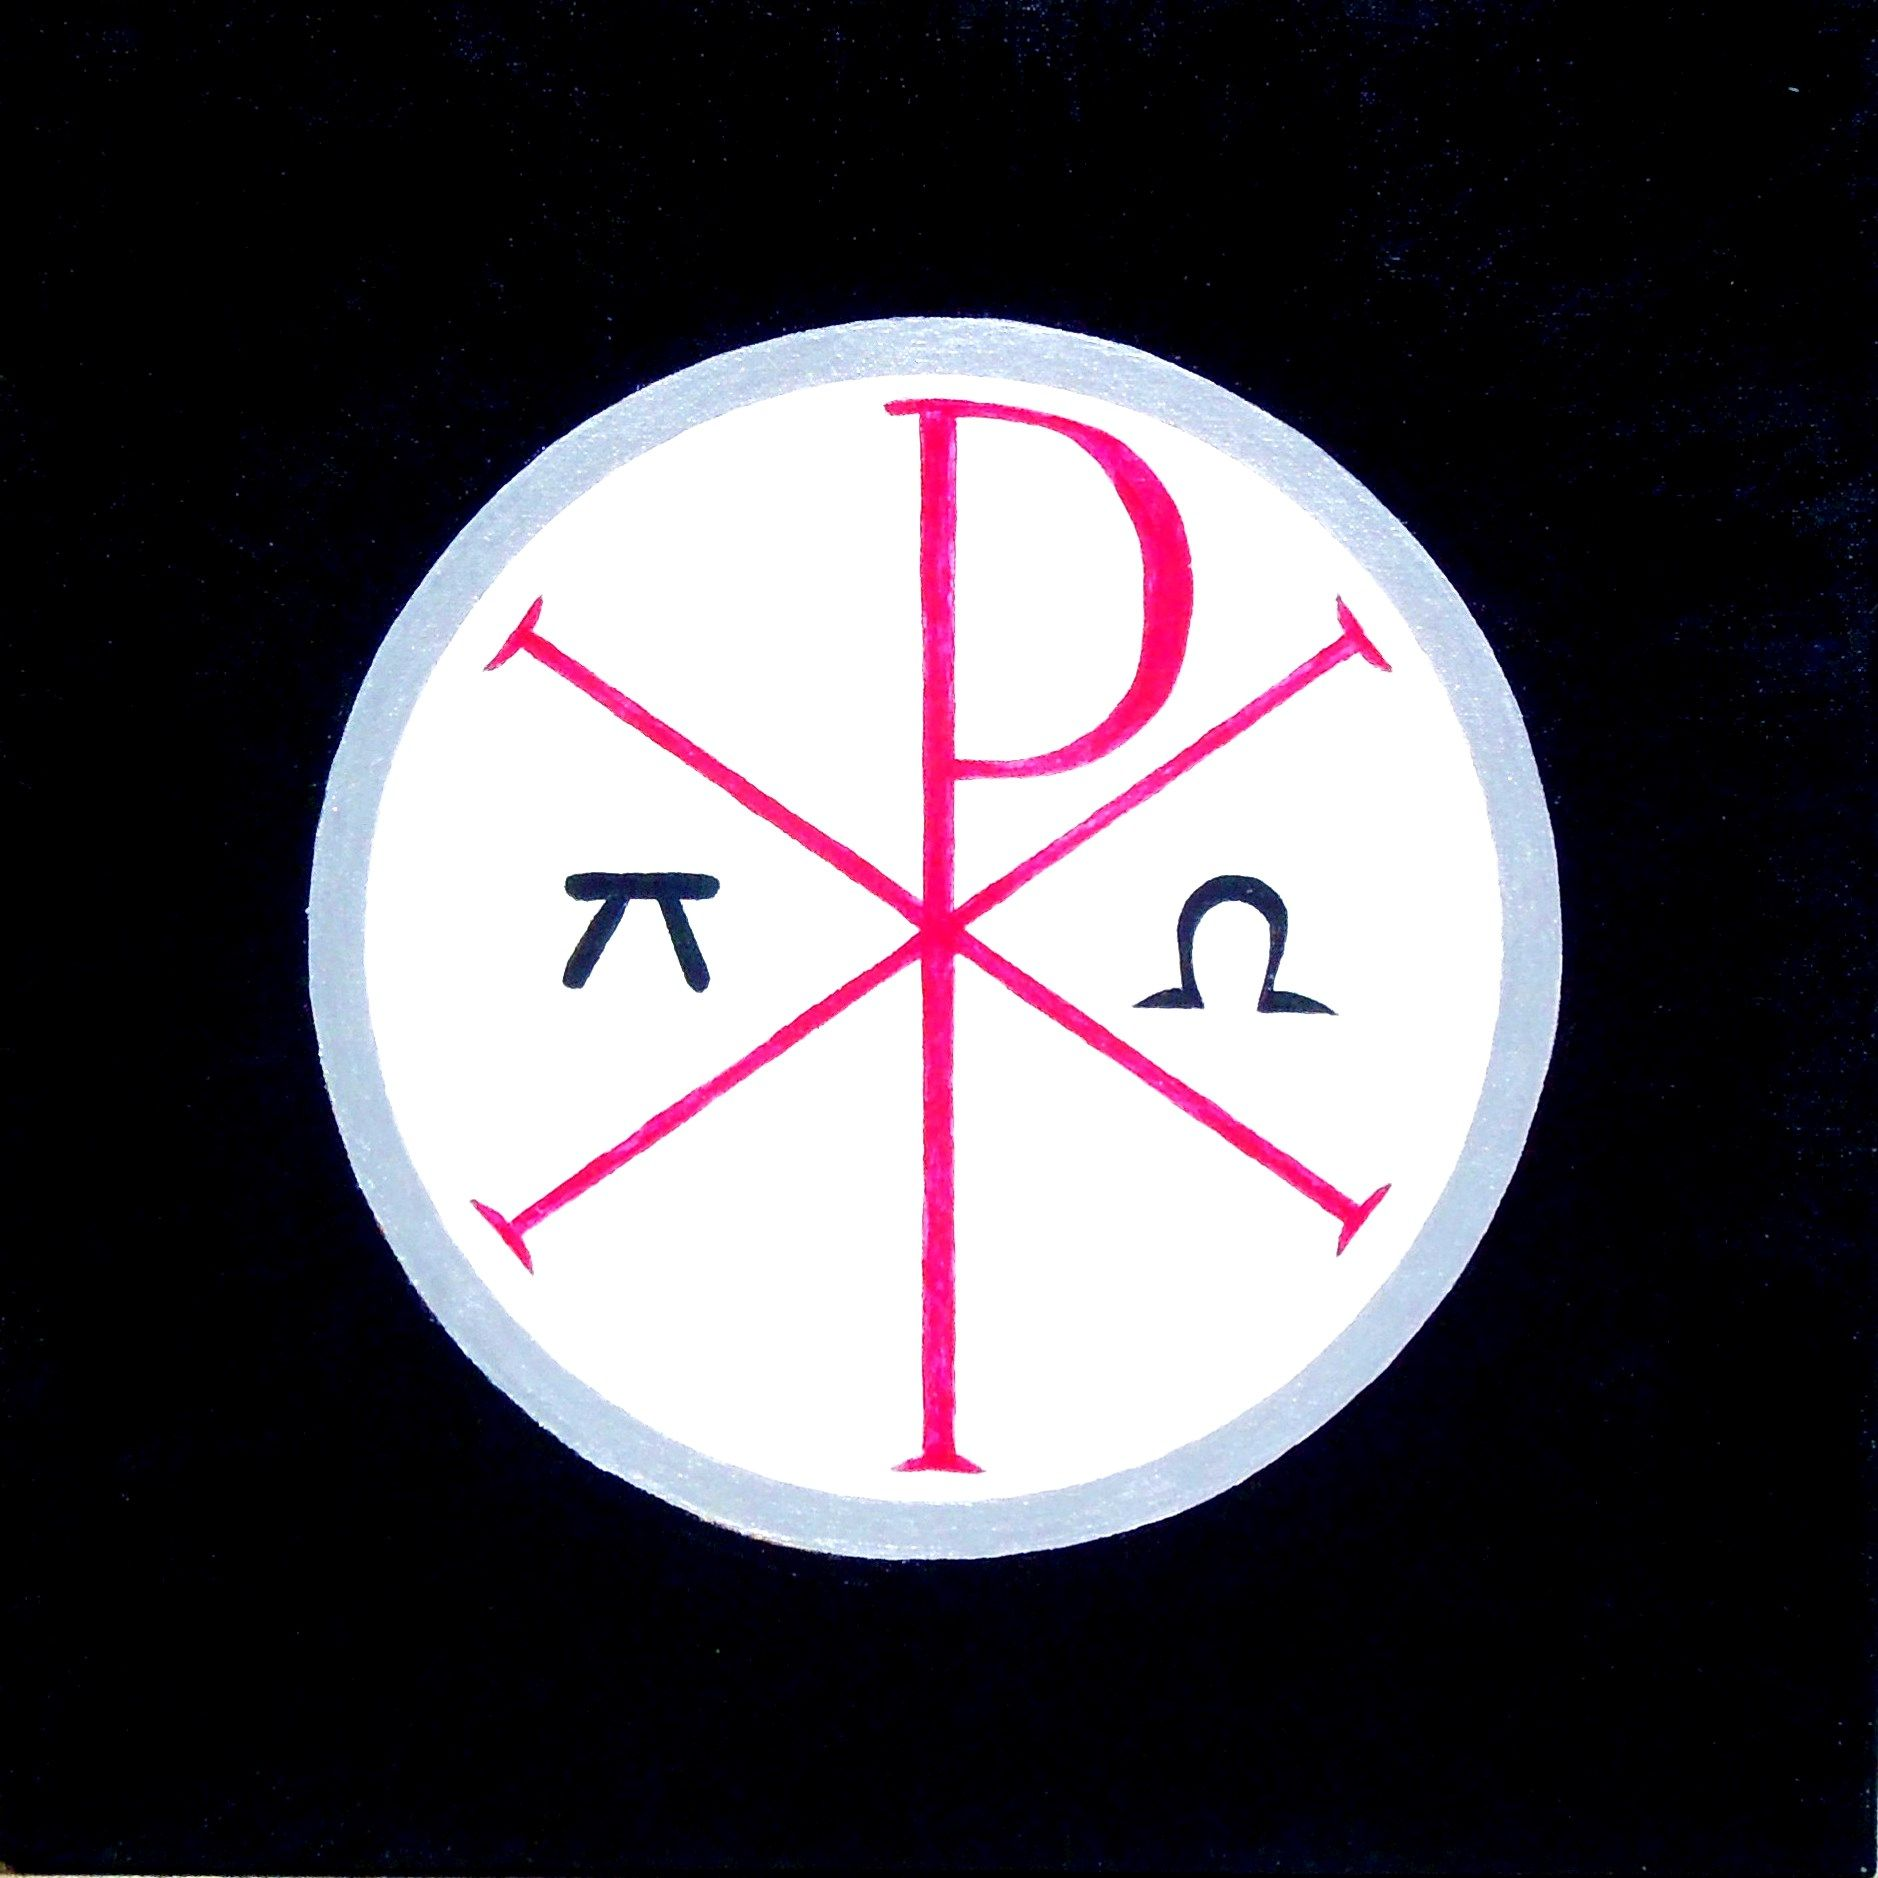 Chi Rho With Alpha And Omega In A Circle By Michael James Fry